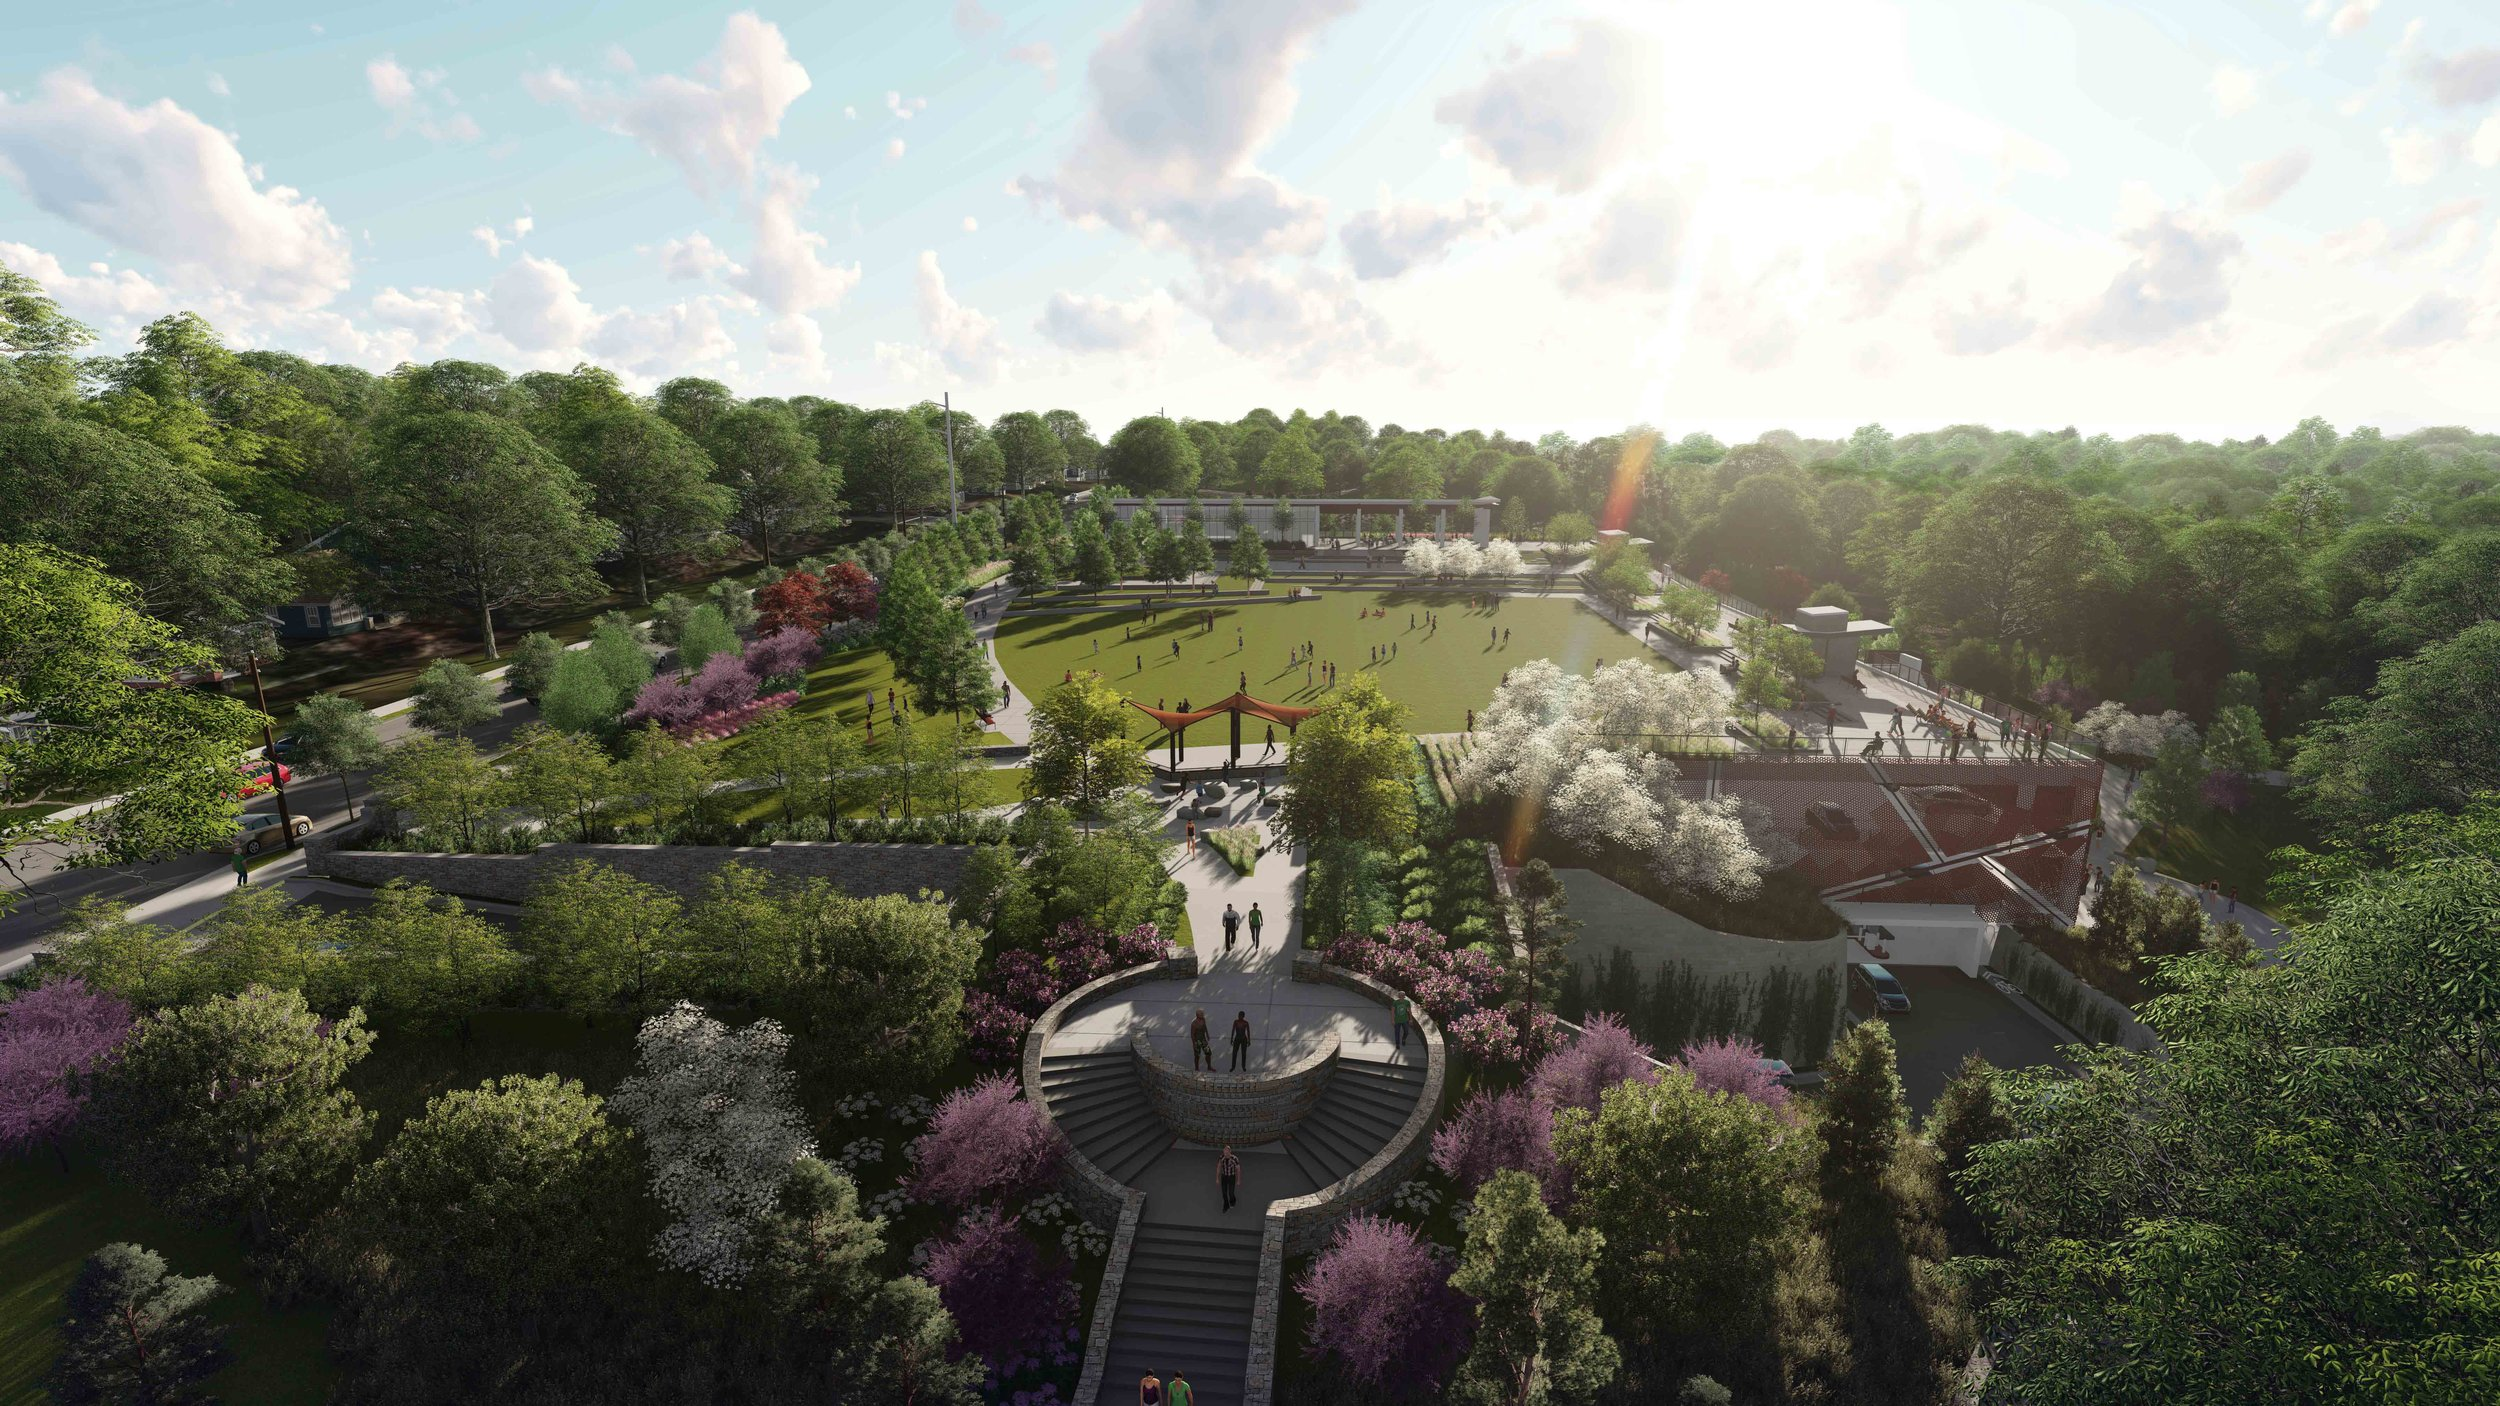 2. Grant Park - Atlanta's Oldest Park with a Stronger Presence, Identity and Sustainbility